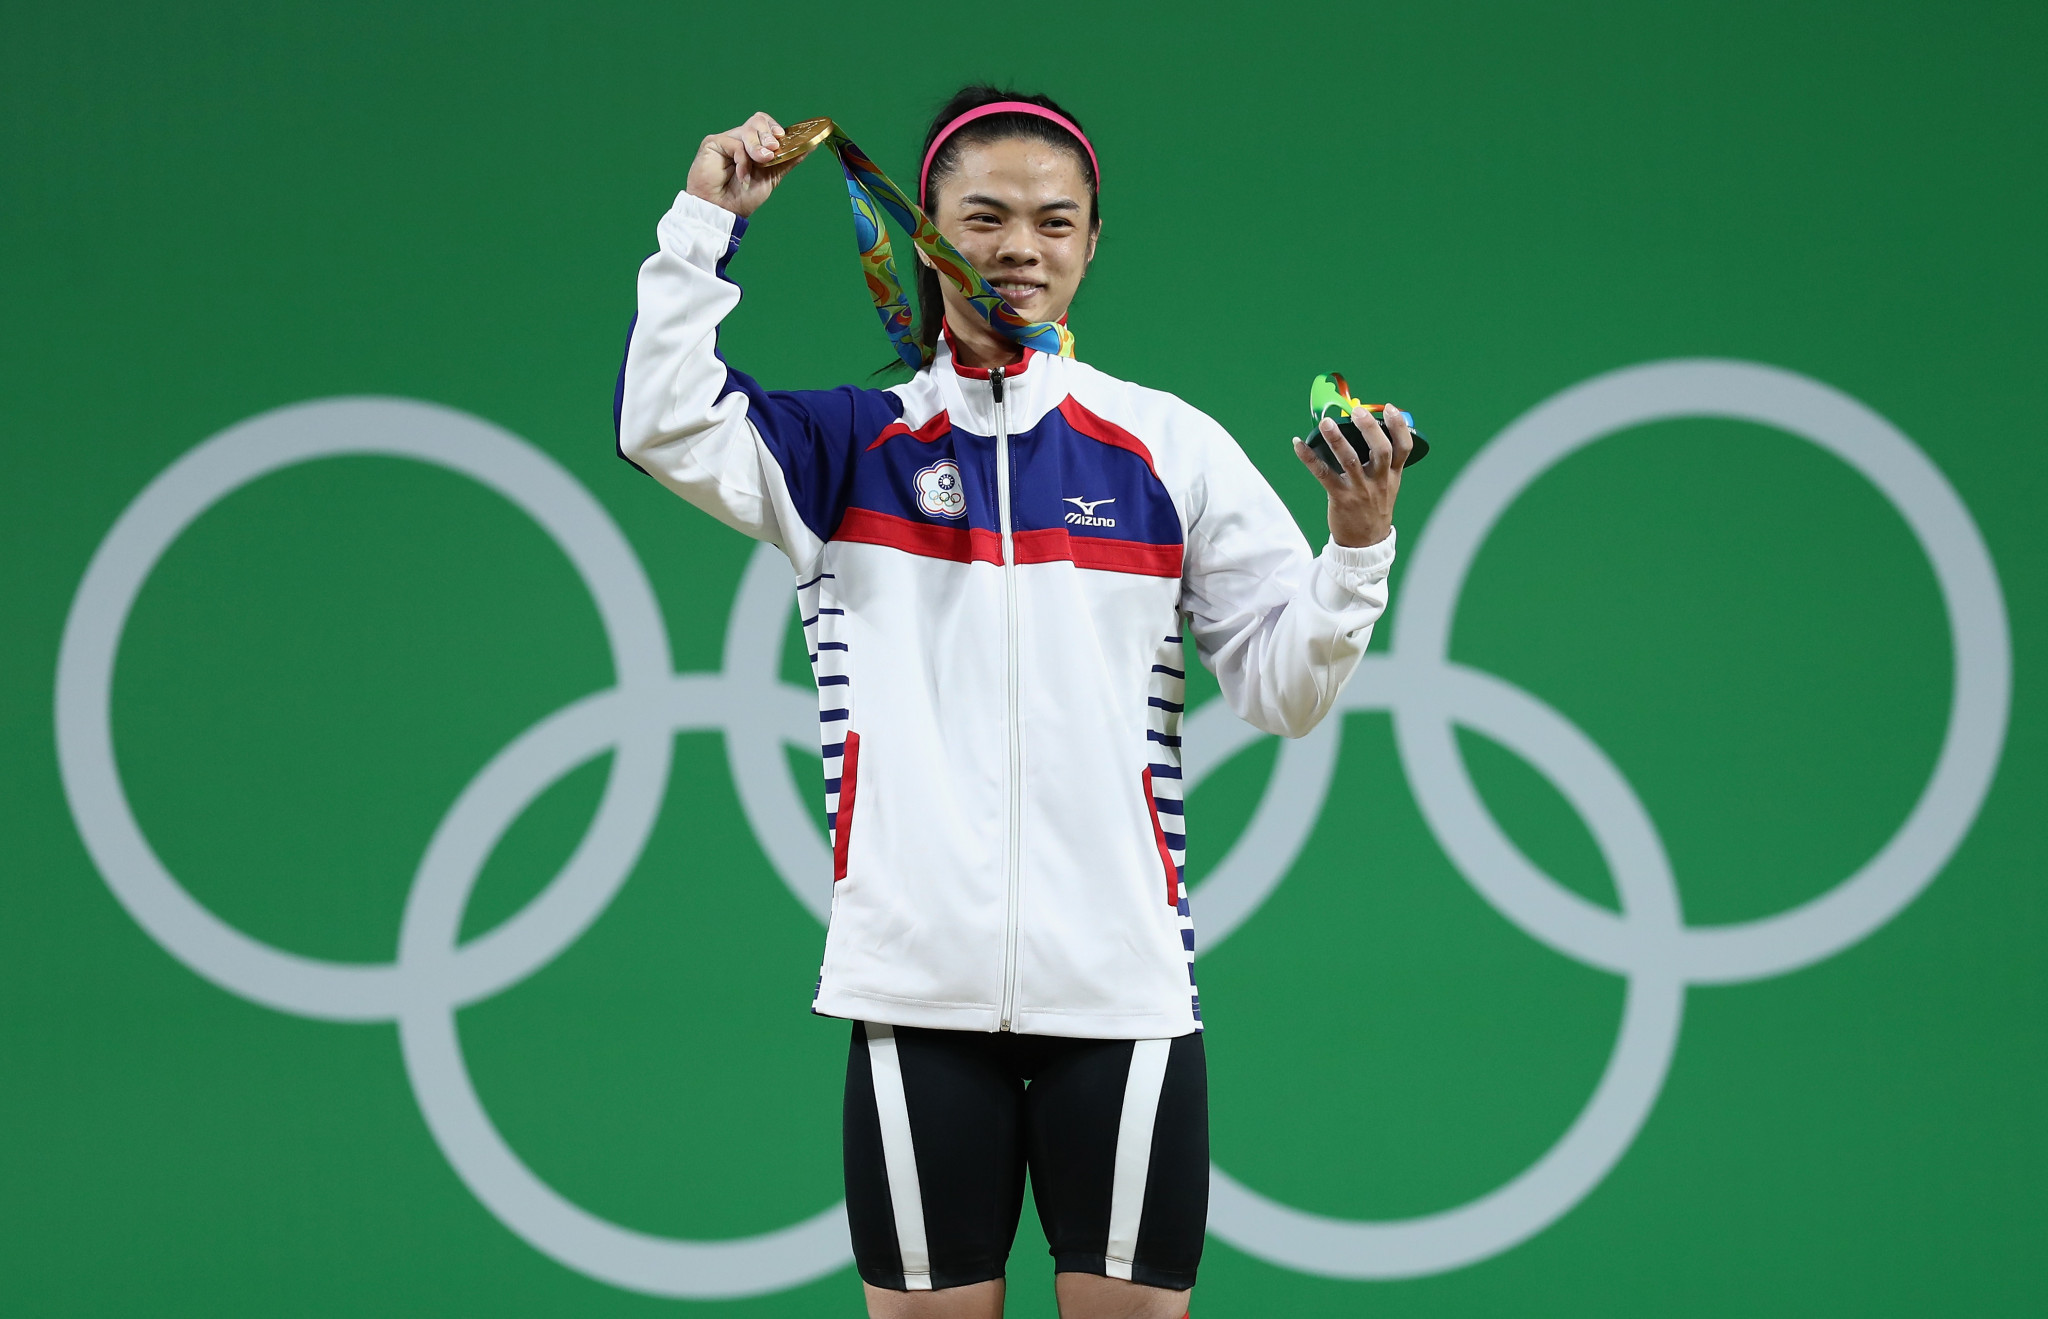 Chinese Taipei's Hsu Shu-ching won an Olympic gold medal gold in weightlifting at Rio 2016 ©Getty Images